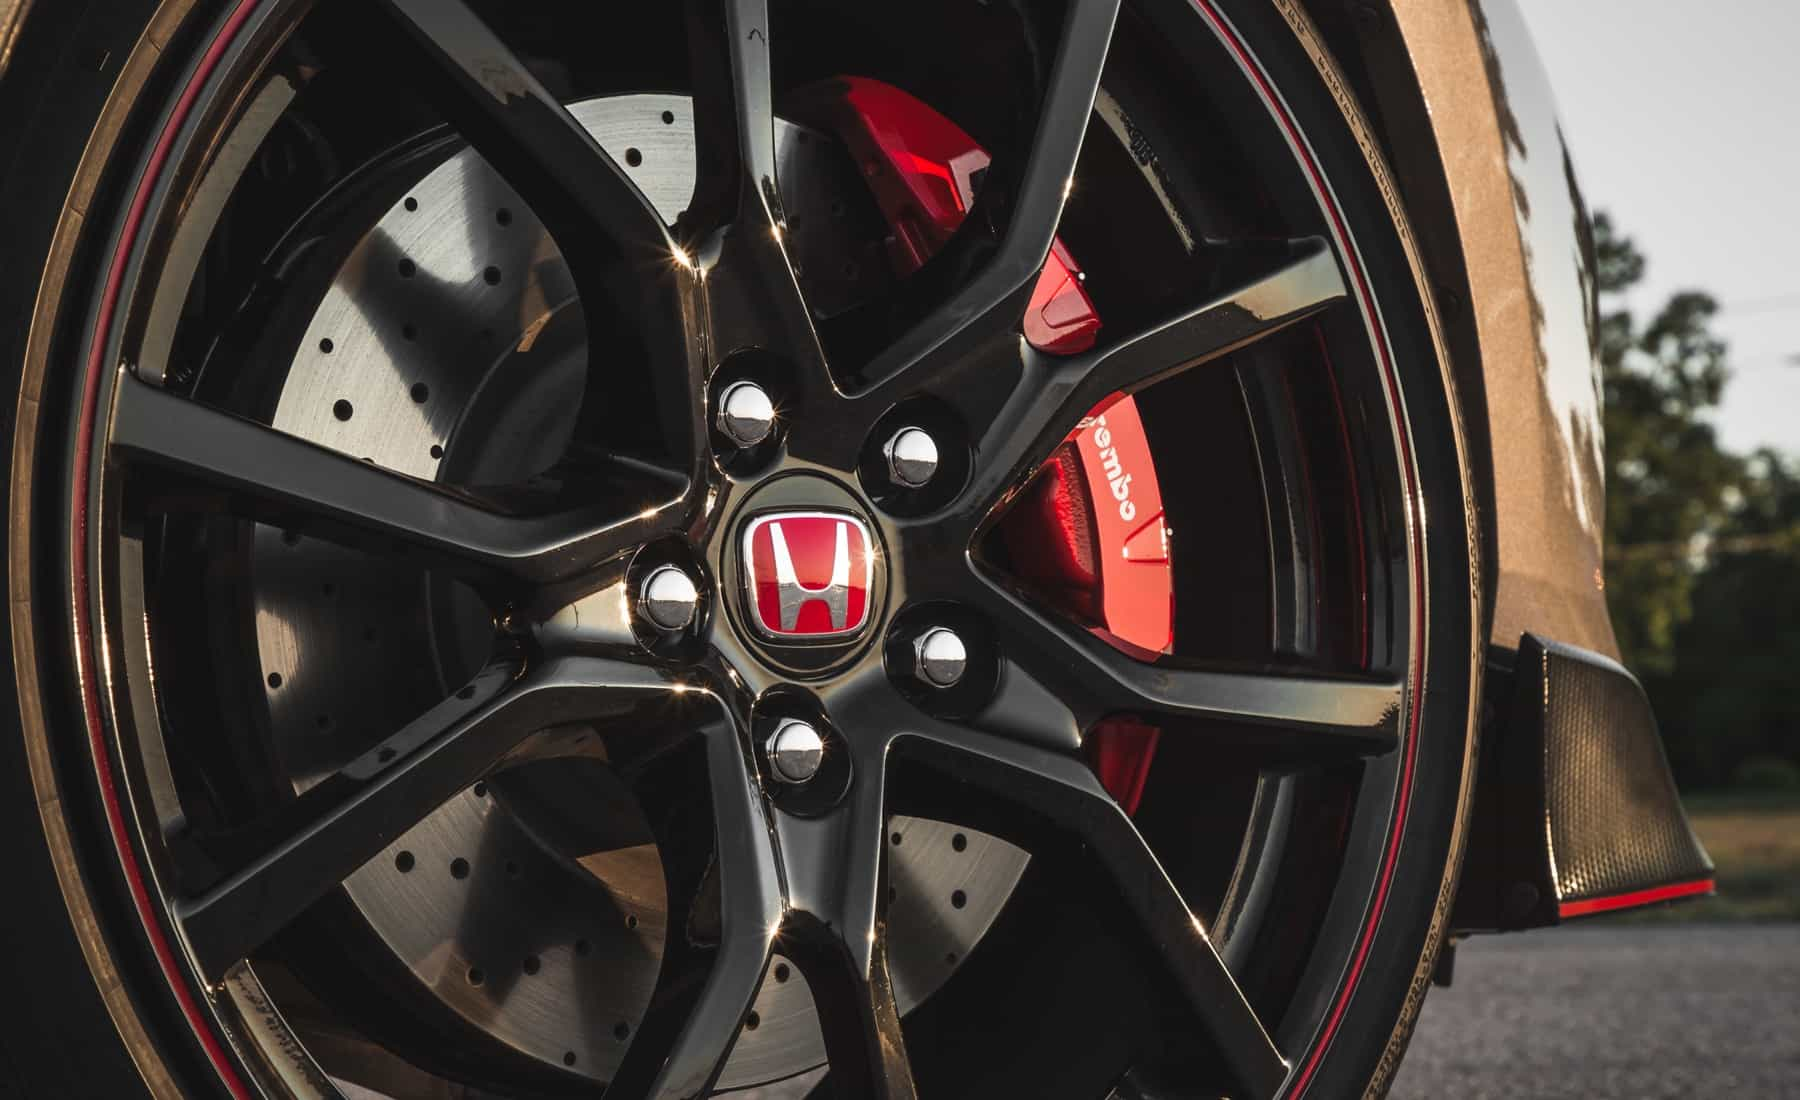 2017 Honda Civic Type R Exterior View Wheel Break Caliper (Photo 34 of 48)